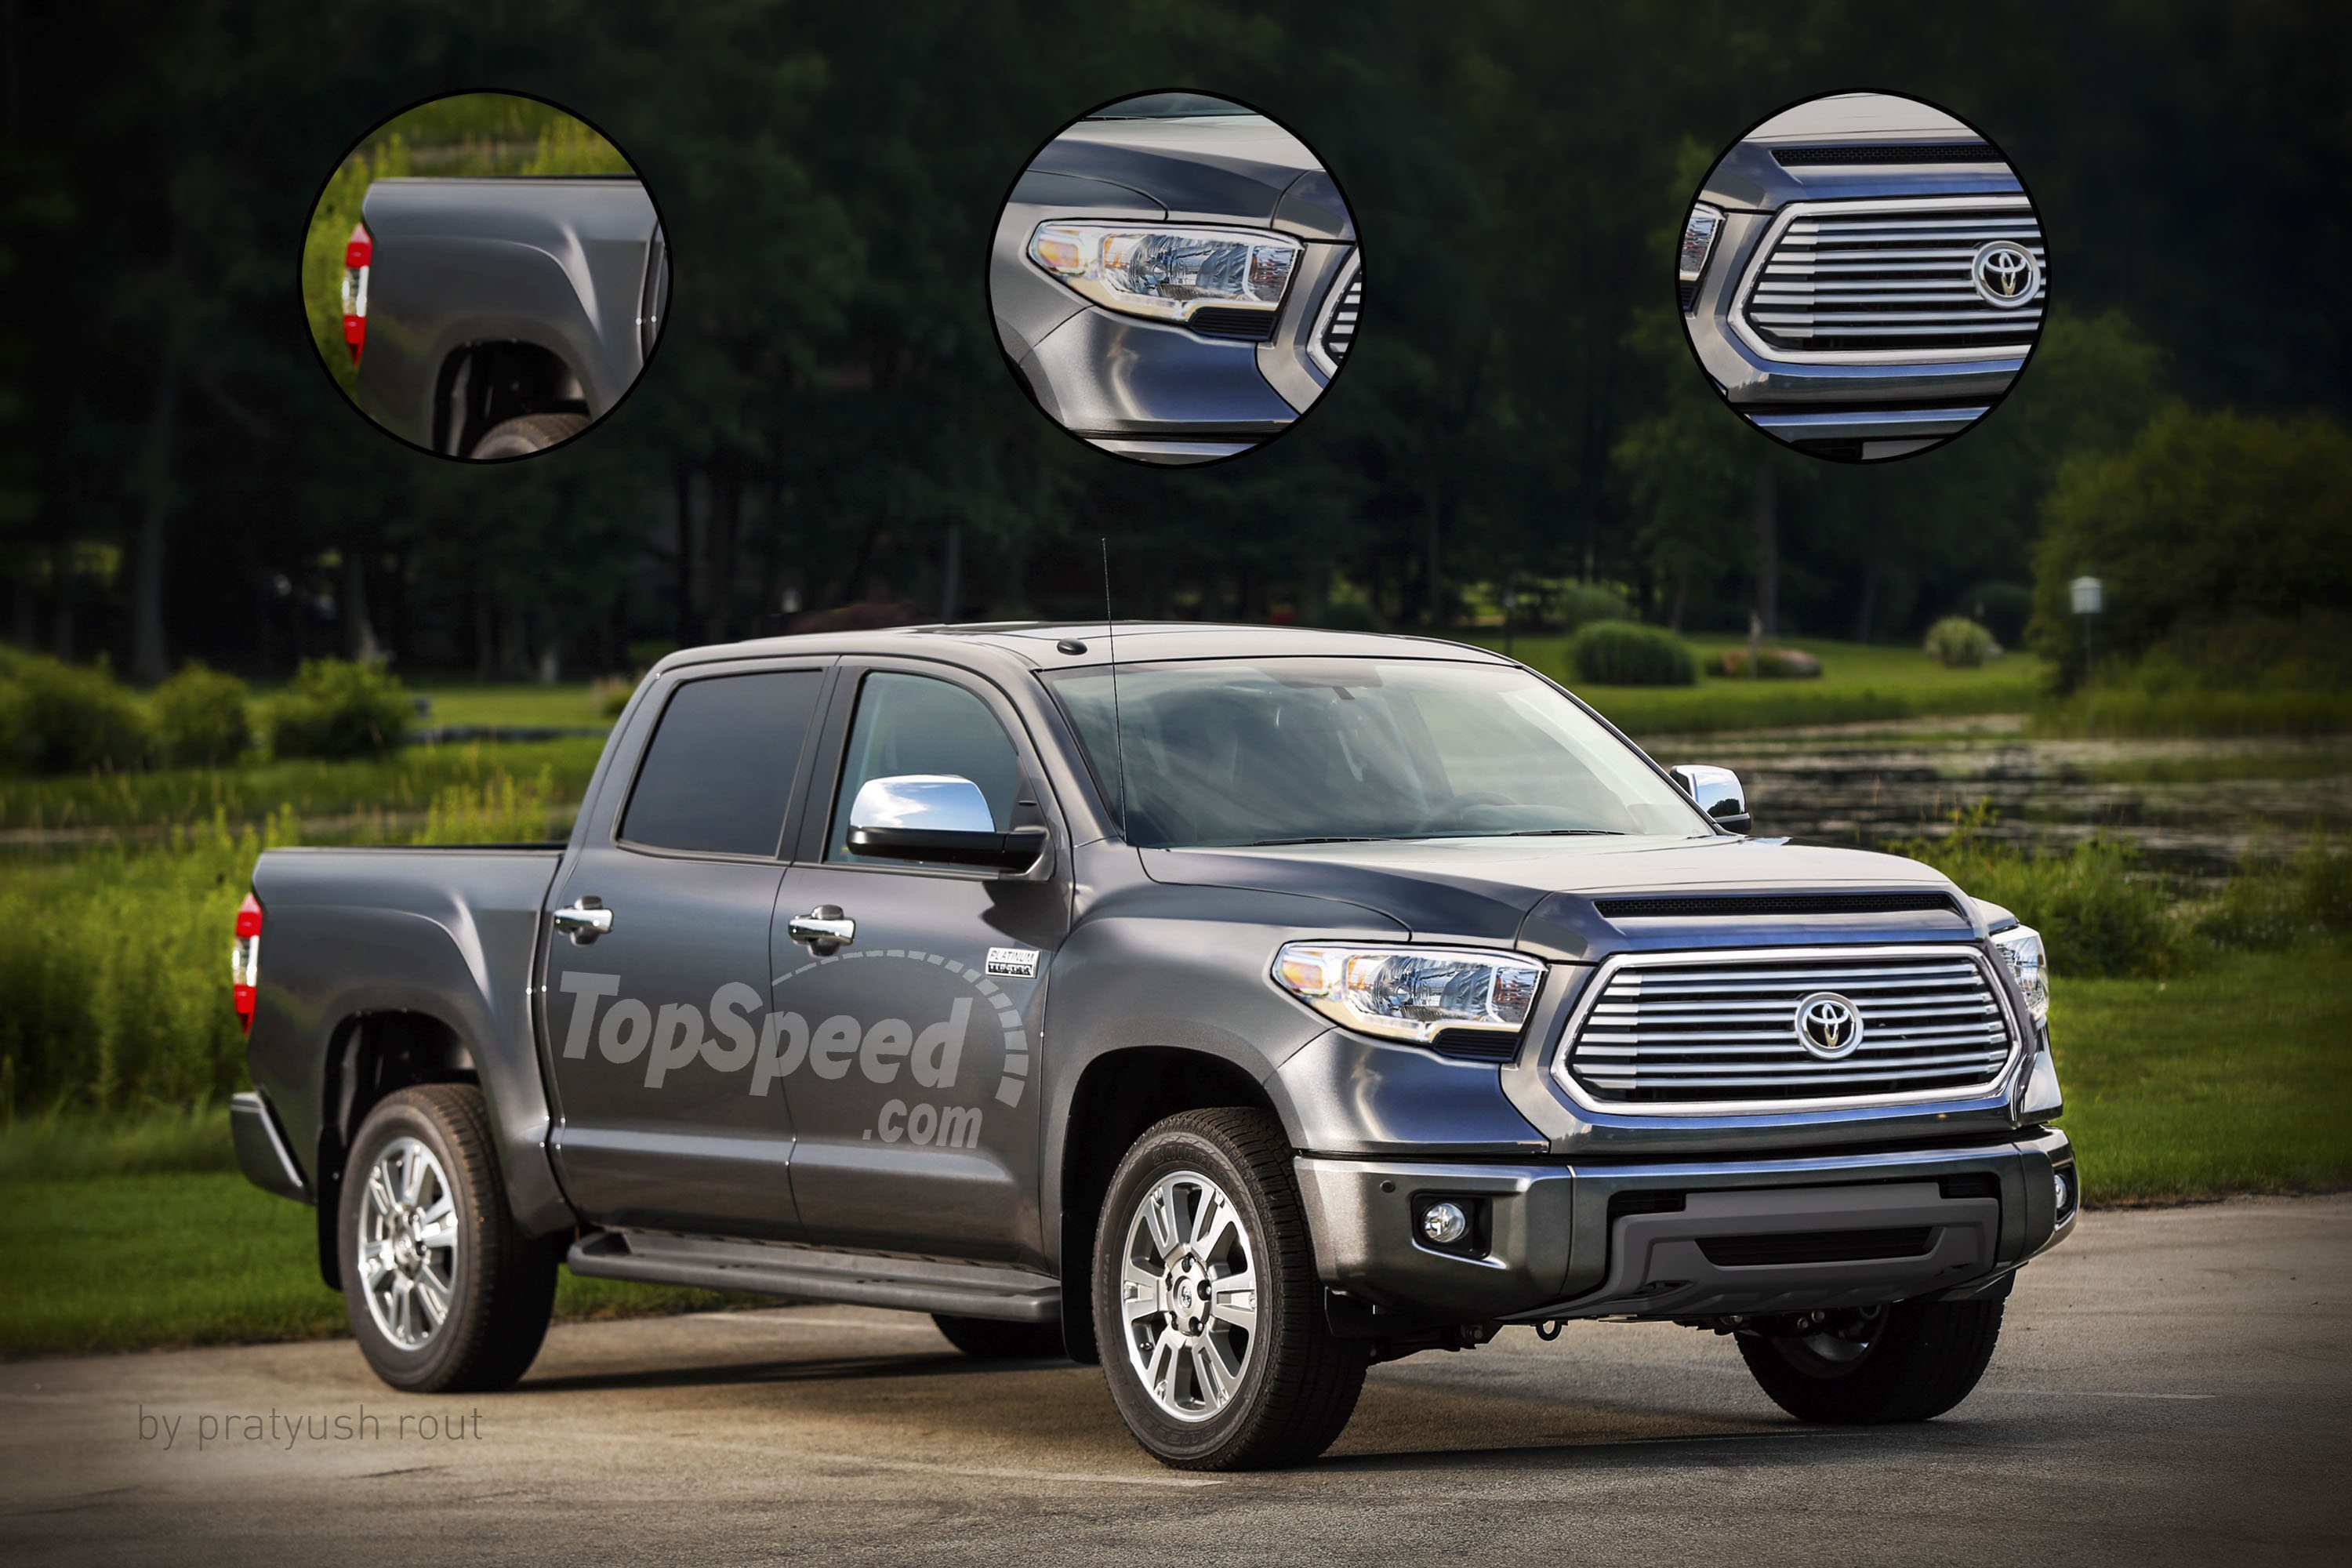 50 Concept of 2019 Toyota Tundra Concept Specs with 2019 Toyota Tundra Concept